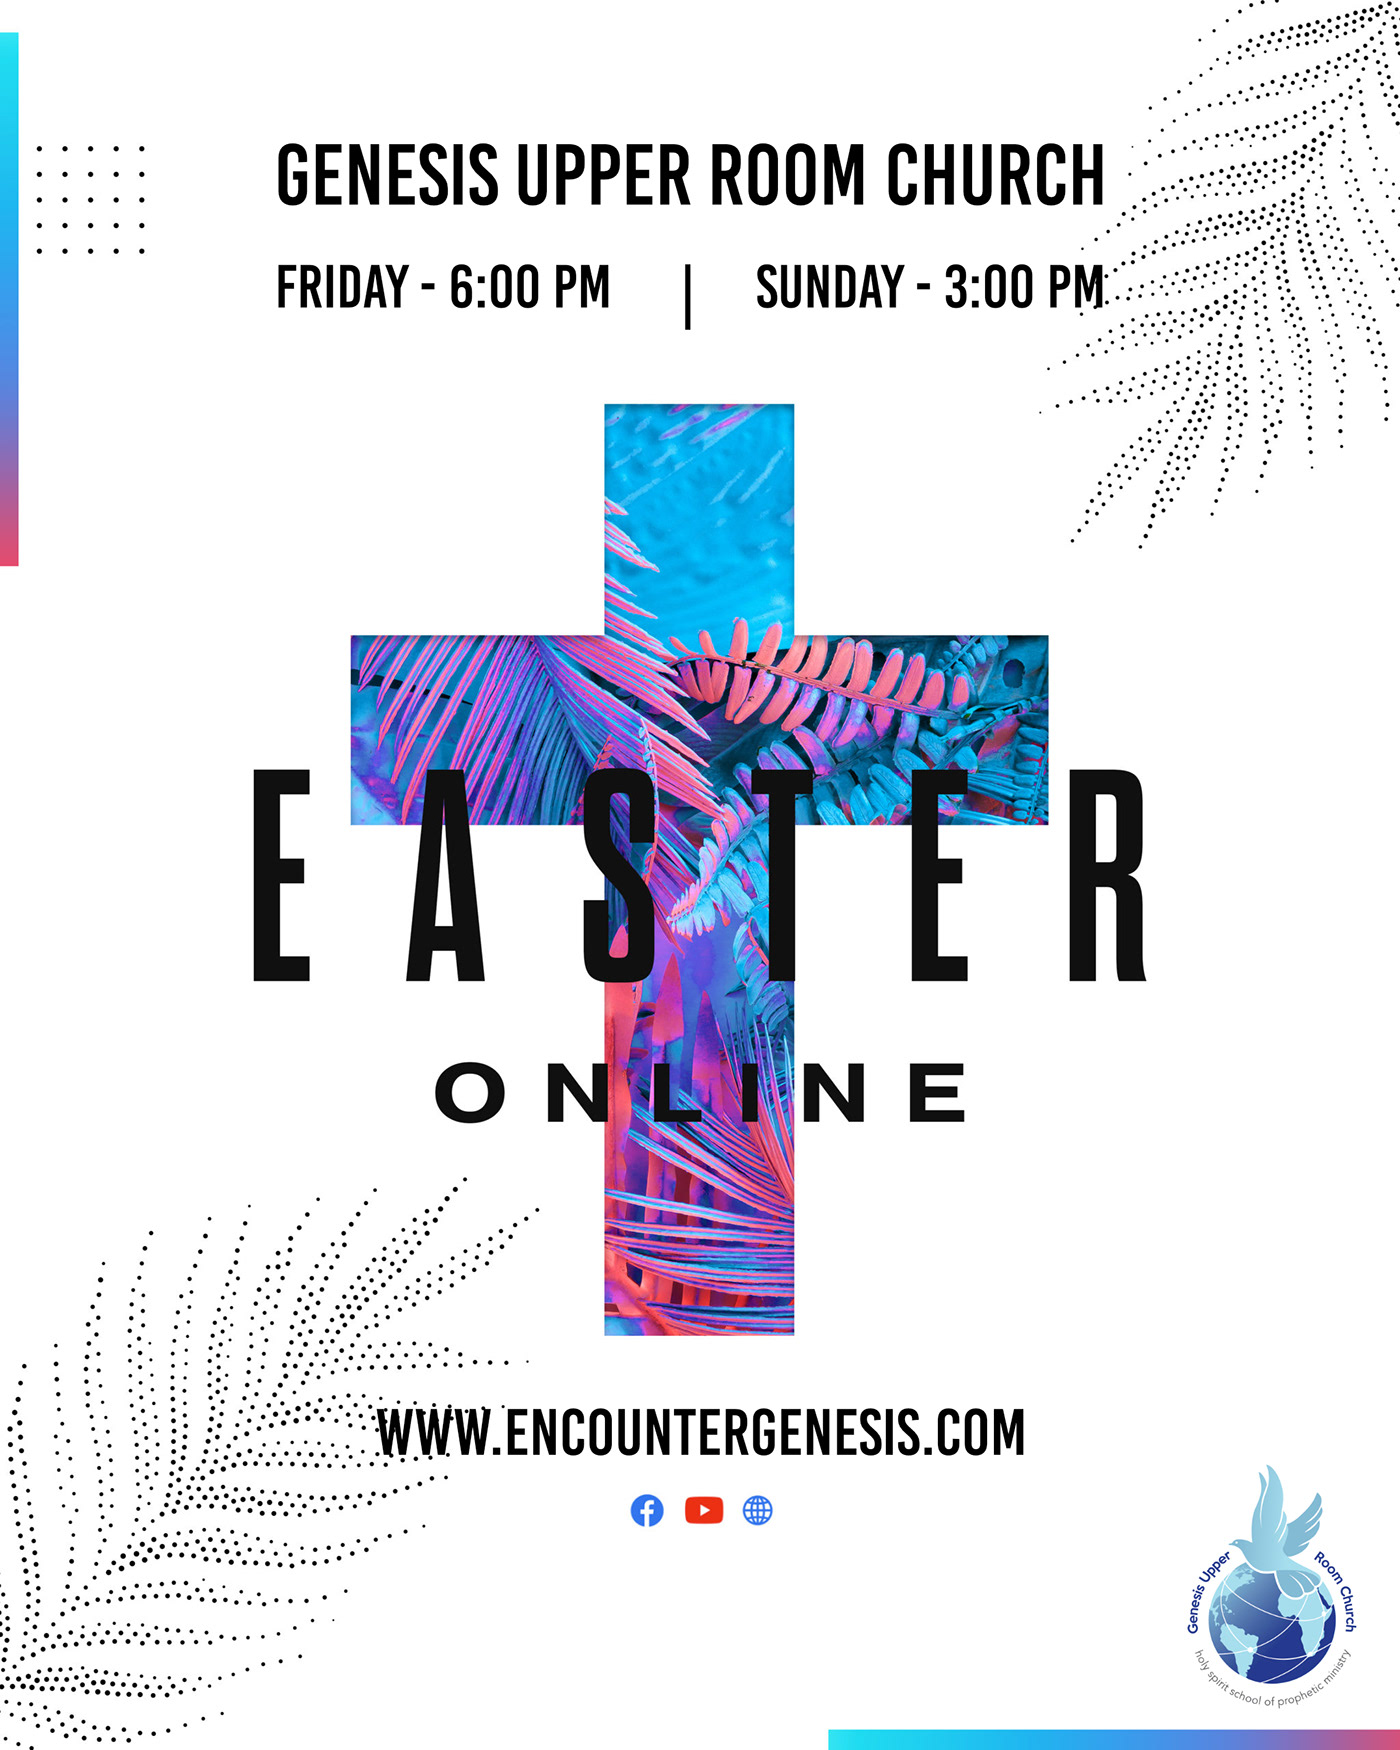 april church churches Easter Event God jesus minister Ministry pastor